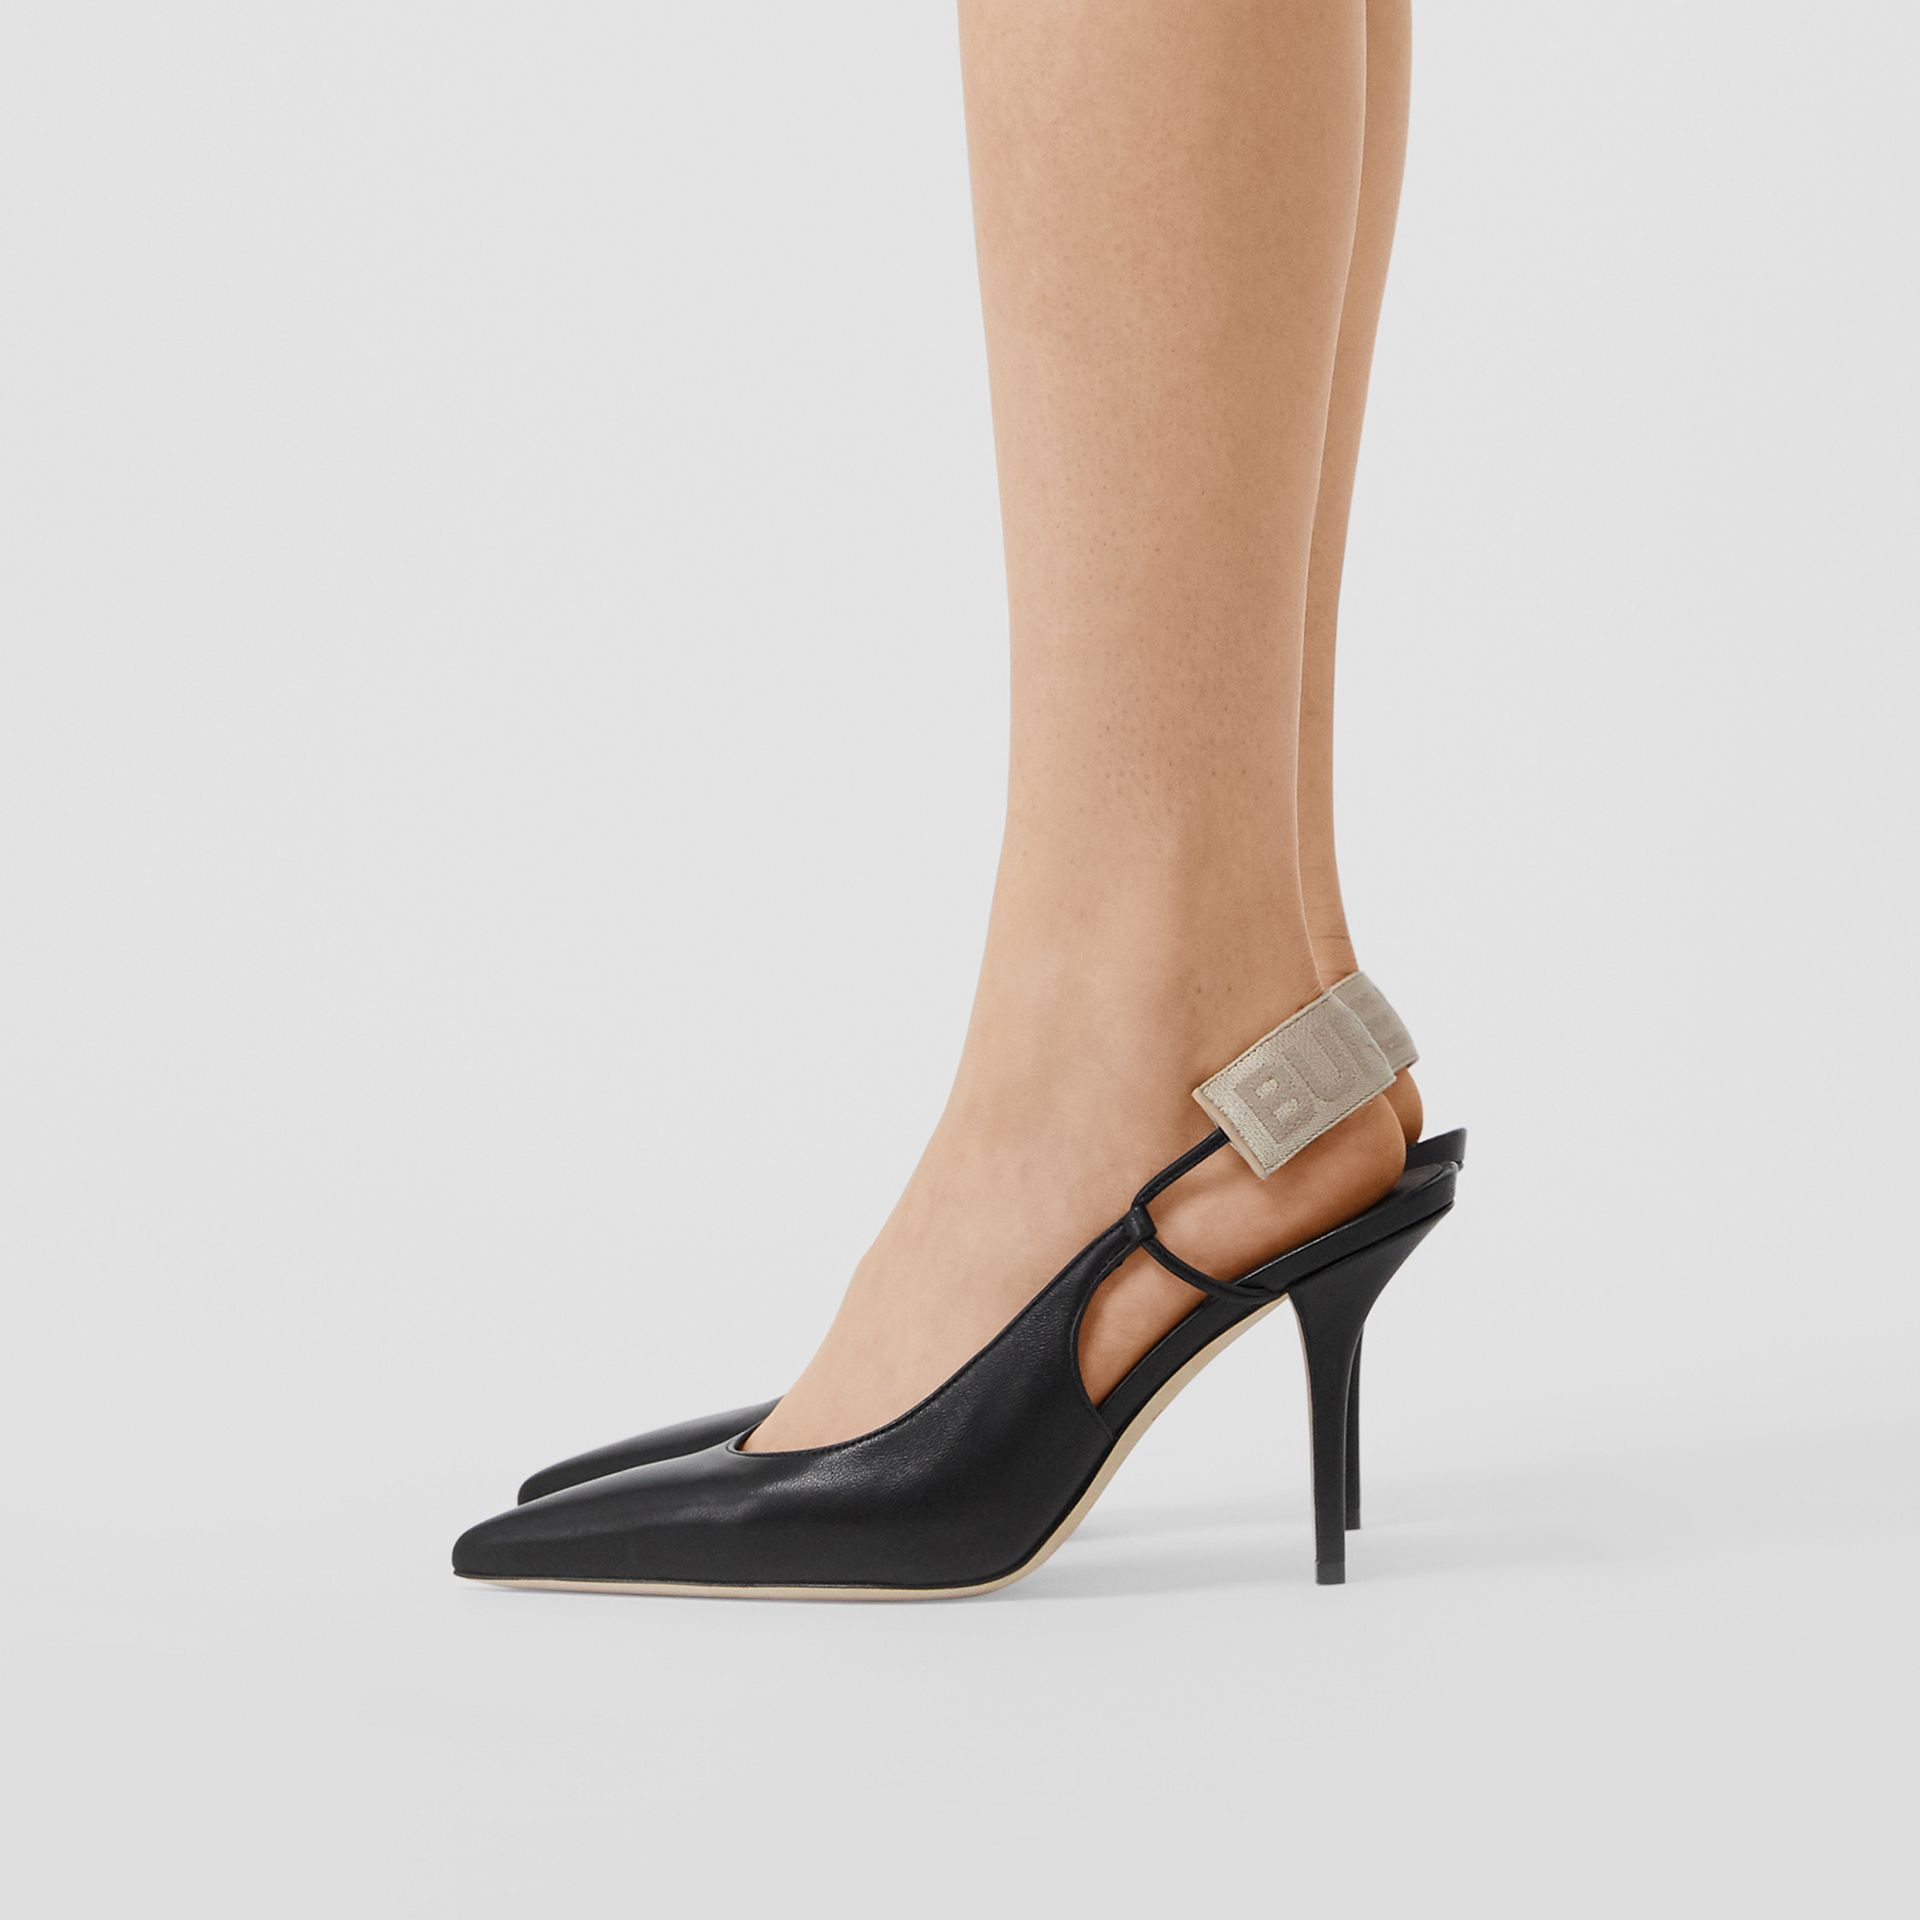 Logo Detail Lambskin Slingback Pumps in Black - Women | Burberry Australia - gallery image 2